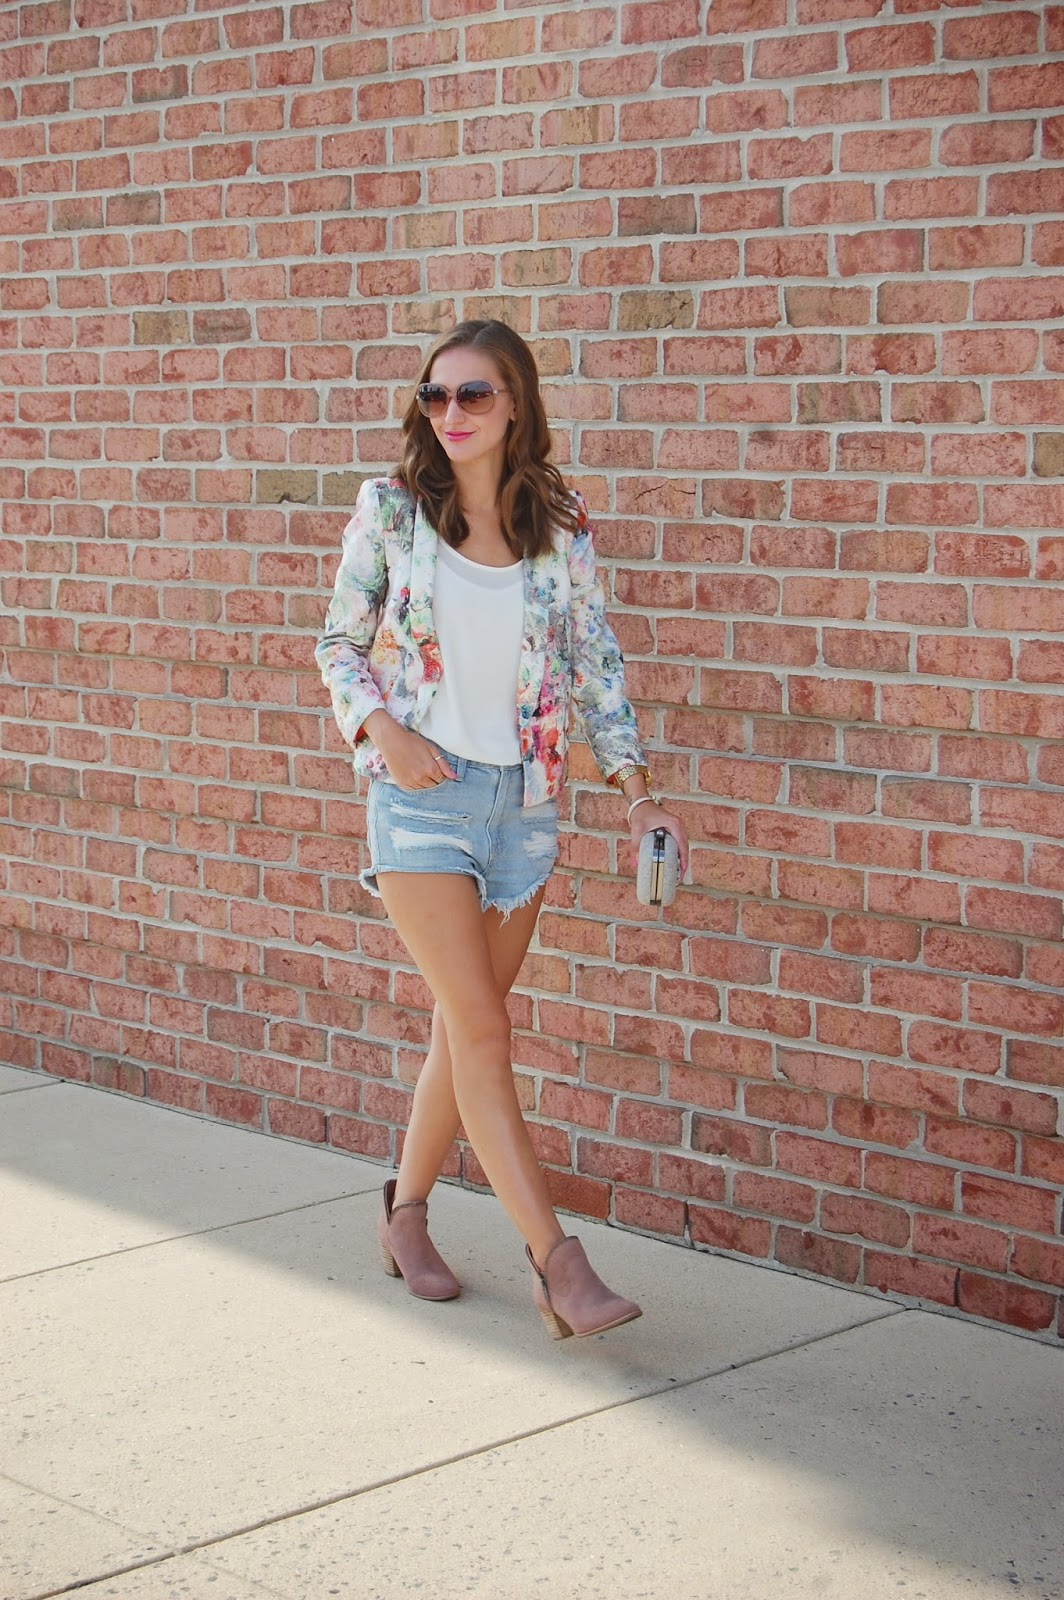 Wearing Zara Floral Printed Blazer, Vince Camuto Chiffon Blouse, Forever21 Distressed Denim Shorts, Ankle Zip Booties